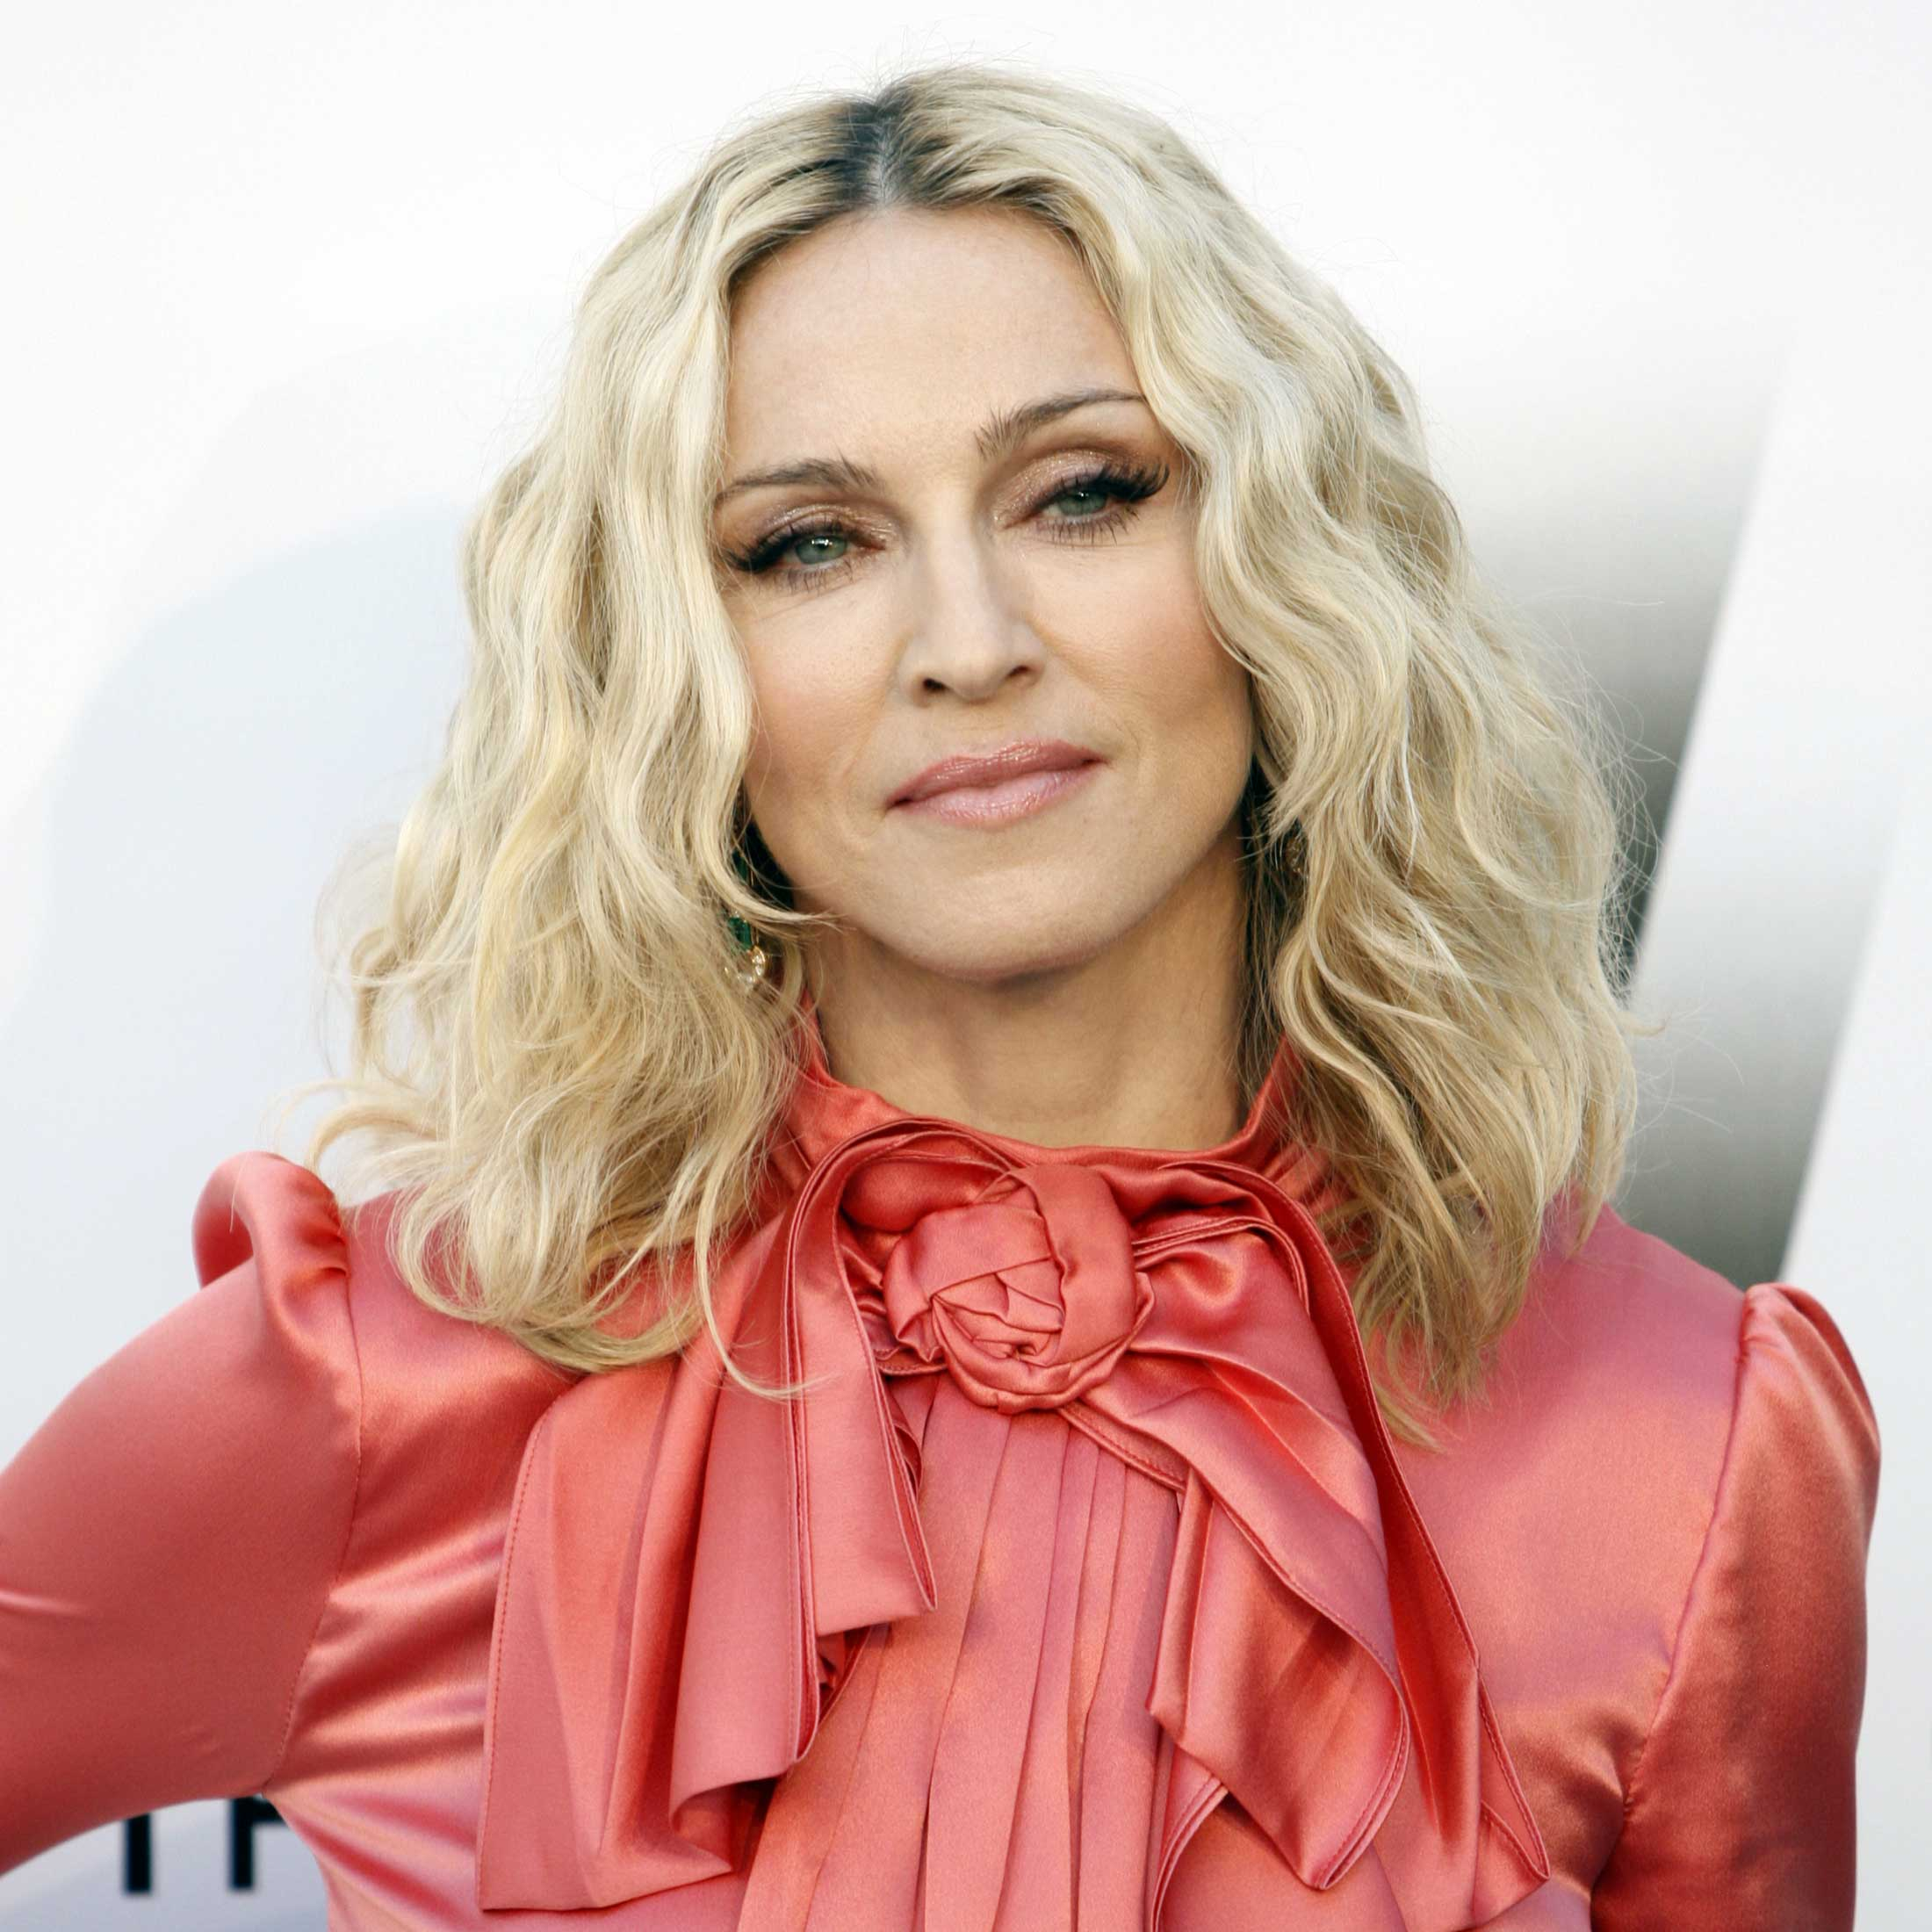 What is madonnas net worth